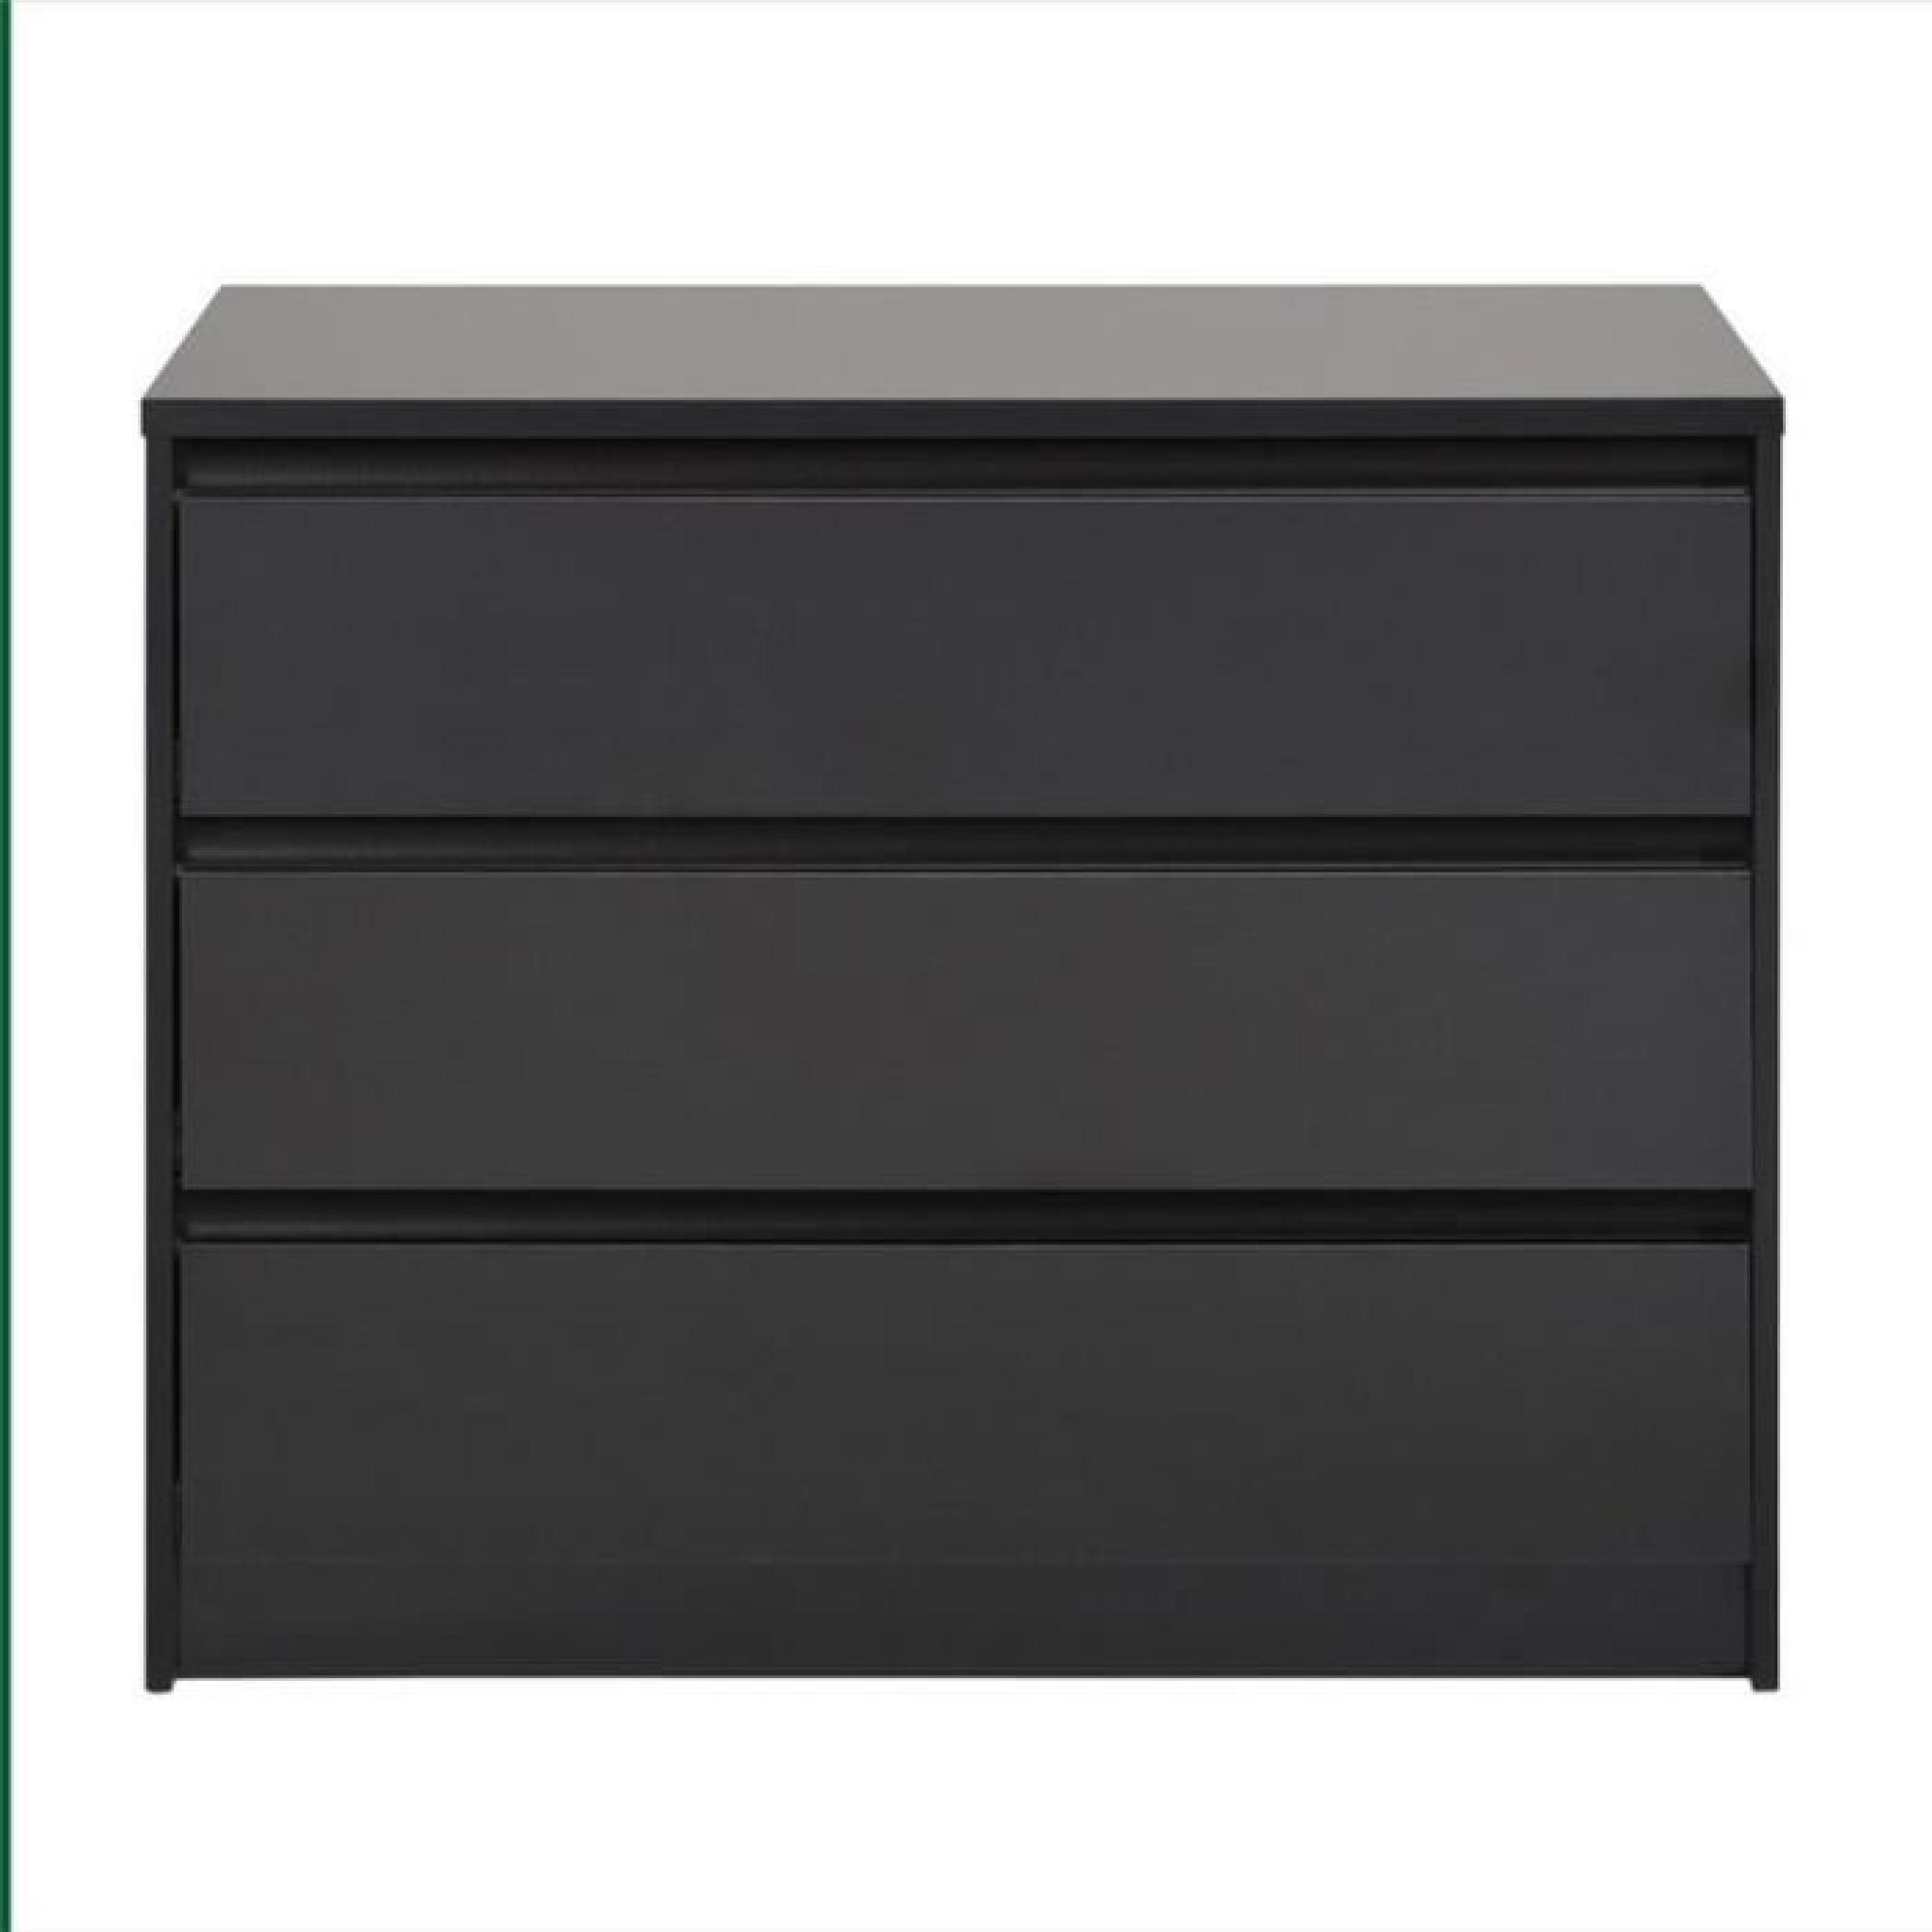 commode 3 tiroirs maxime noir paris prix achat vente commode pas cher couleur et. Black Bedroom Furniture Sets. Home Design Ideas